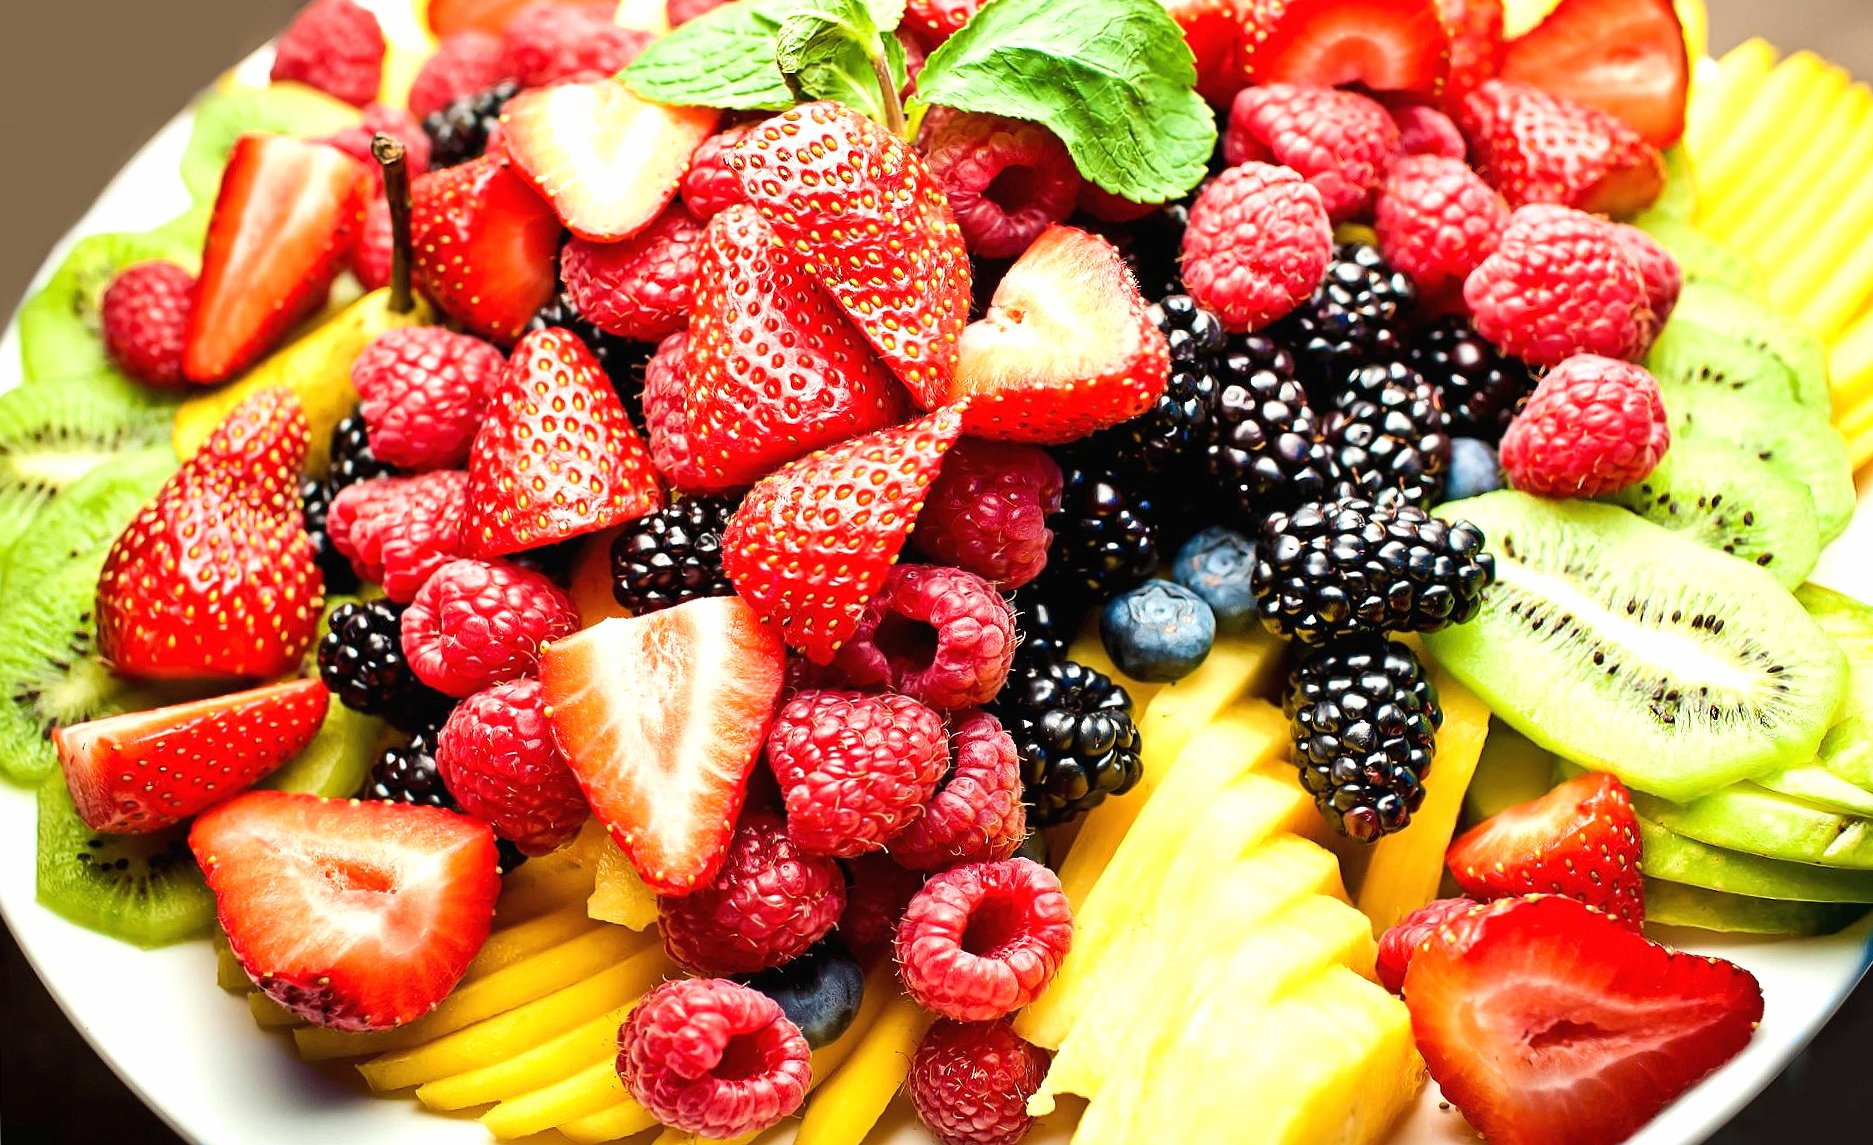 Fruit plate wallpapers HD quality